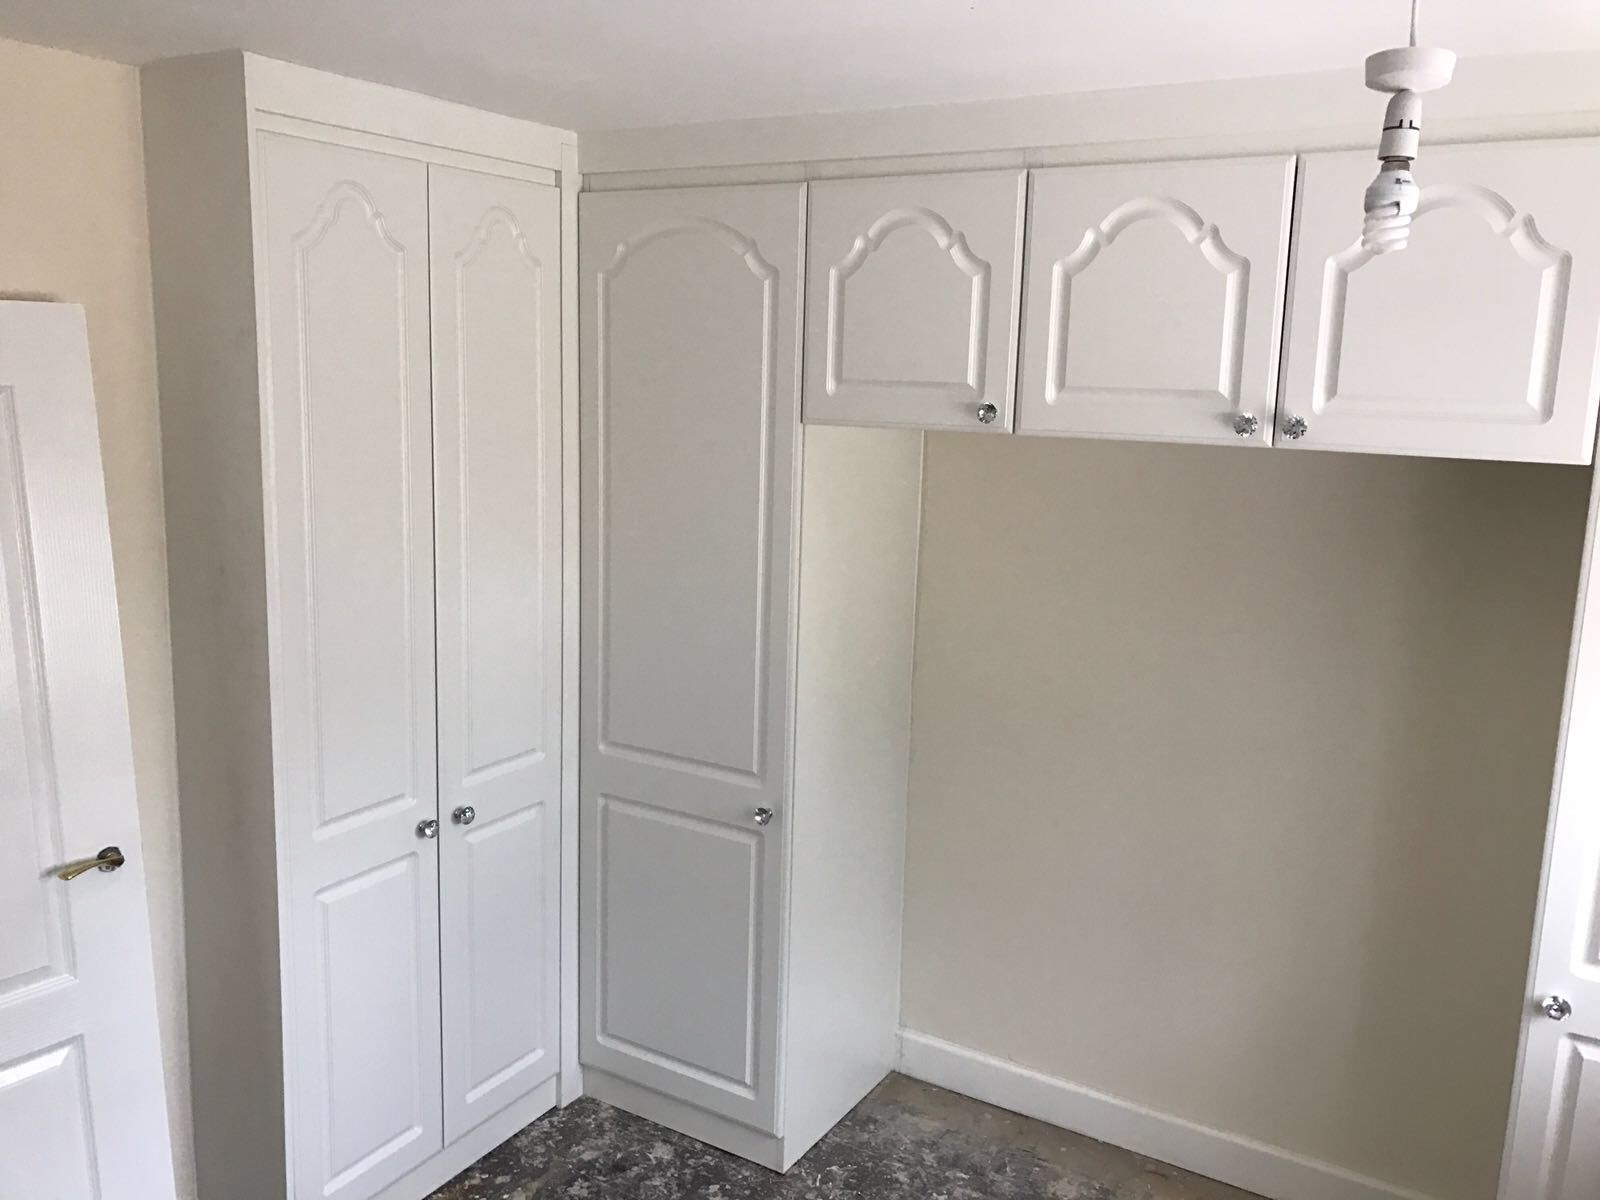 Built in white hinged wardrobe